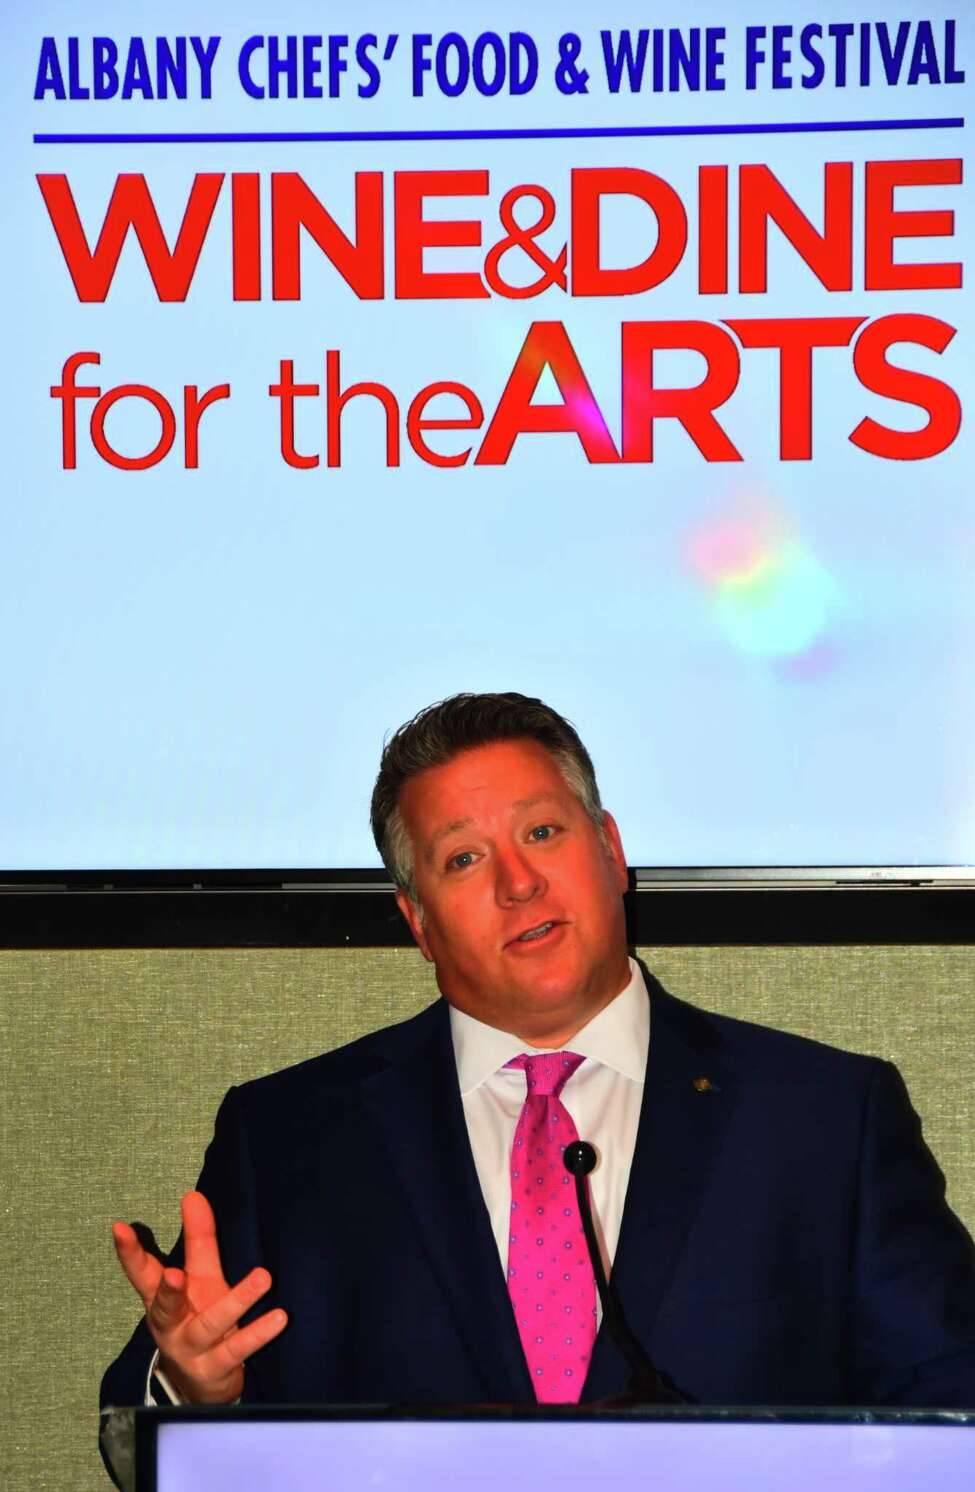 Albany County Executive Dan McCoy speaks during news conference on Tuesday, Oct. 15, 2018, at Albany Capital Center to announce details of the 2020Albany Chef's Food & Wine Festival: Wine & Dine for the Arts.